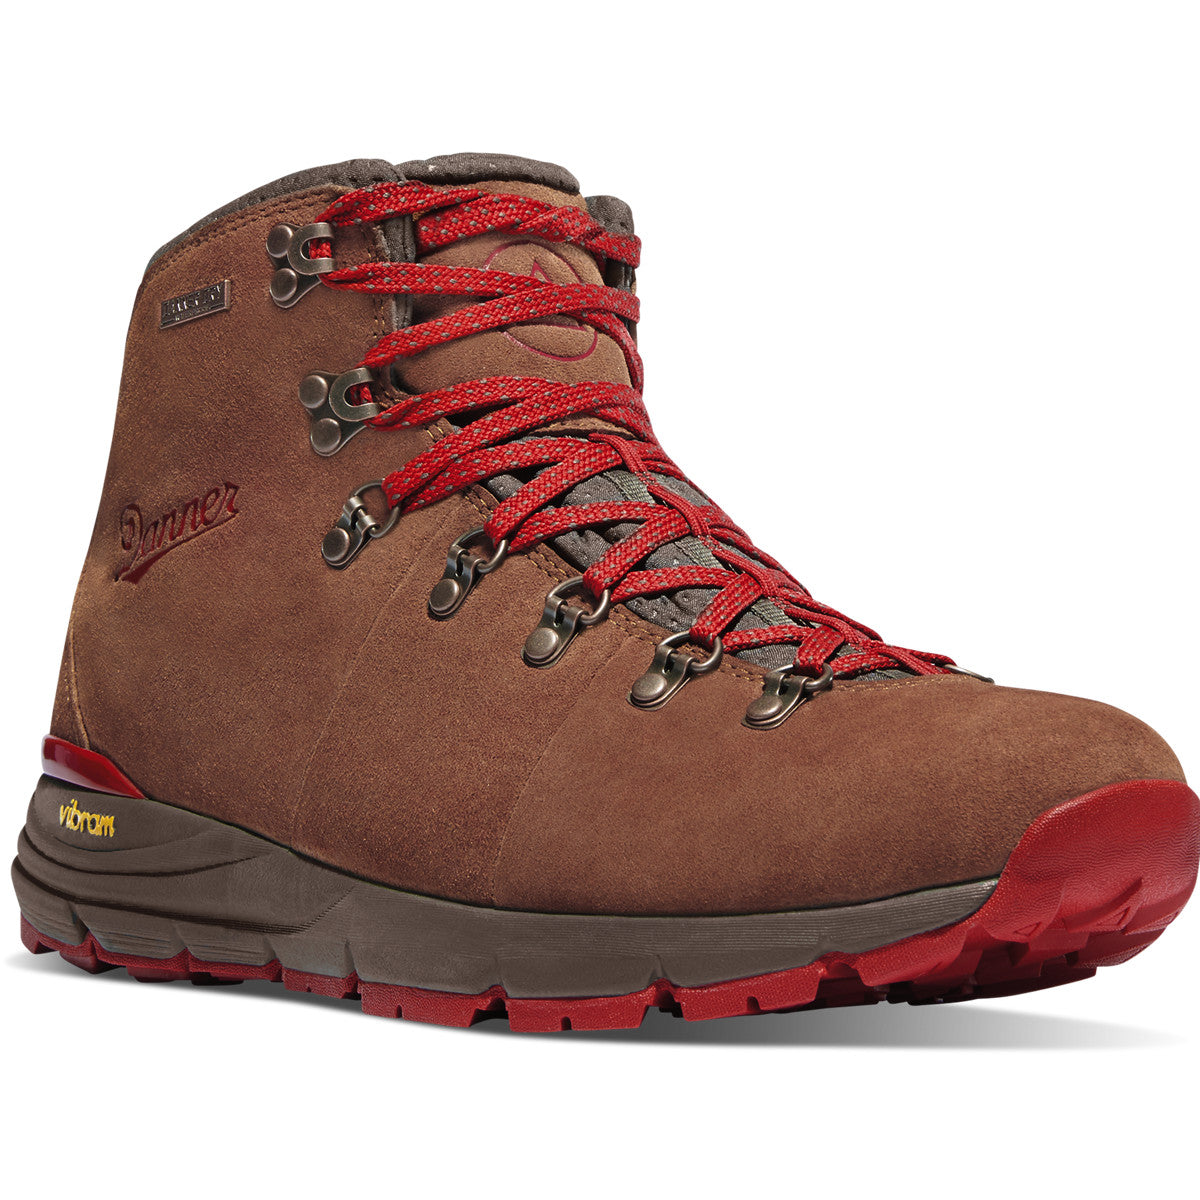 Mountain 600 - Women's